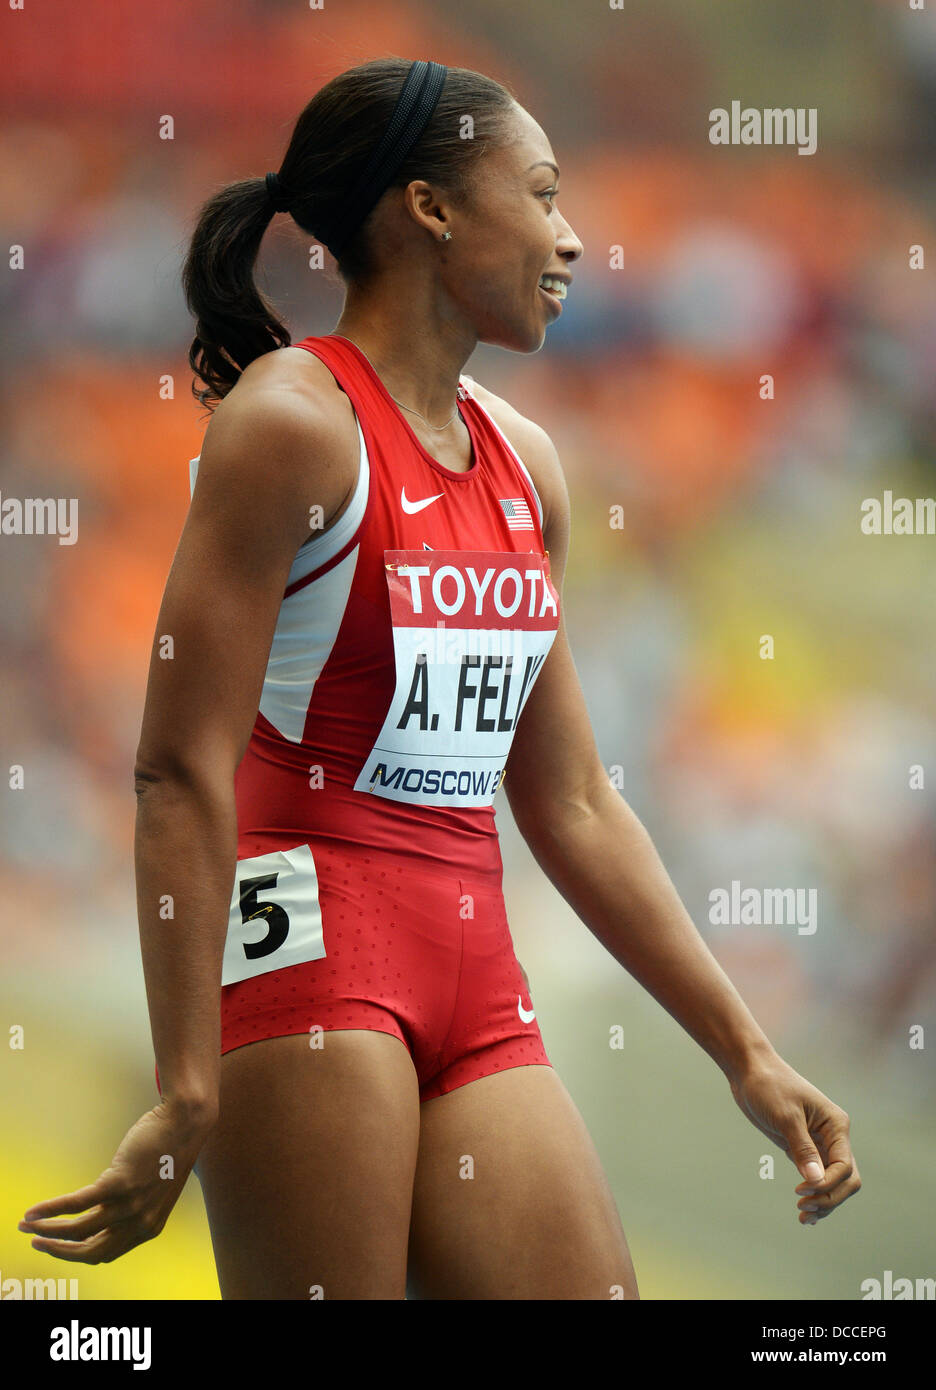 Moscow, Russia. 15th Aug, 2013. Allyson Felix of the US competes in the Women's 200 Metres Qualification at - Stock Image